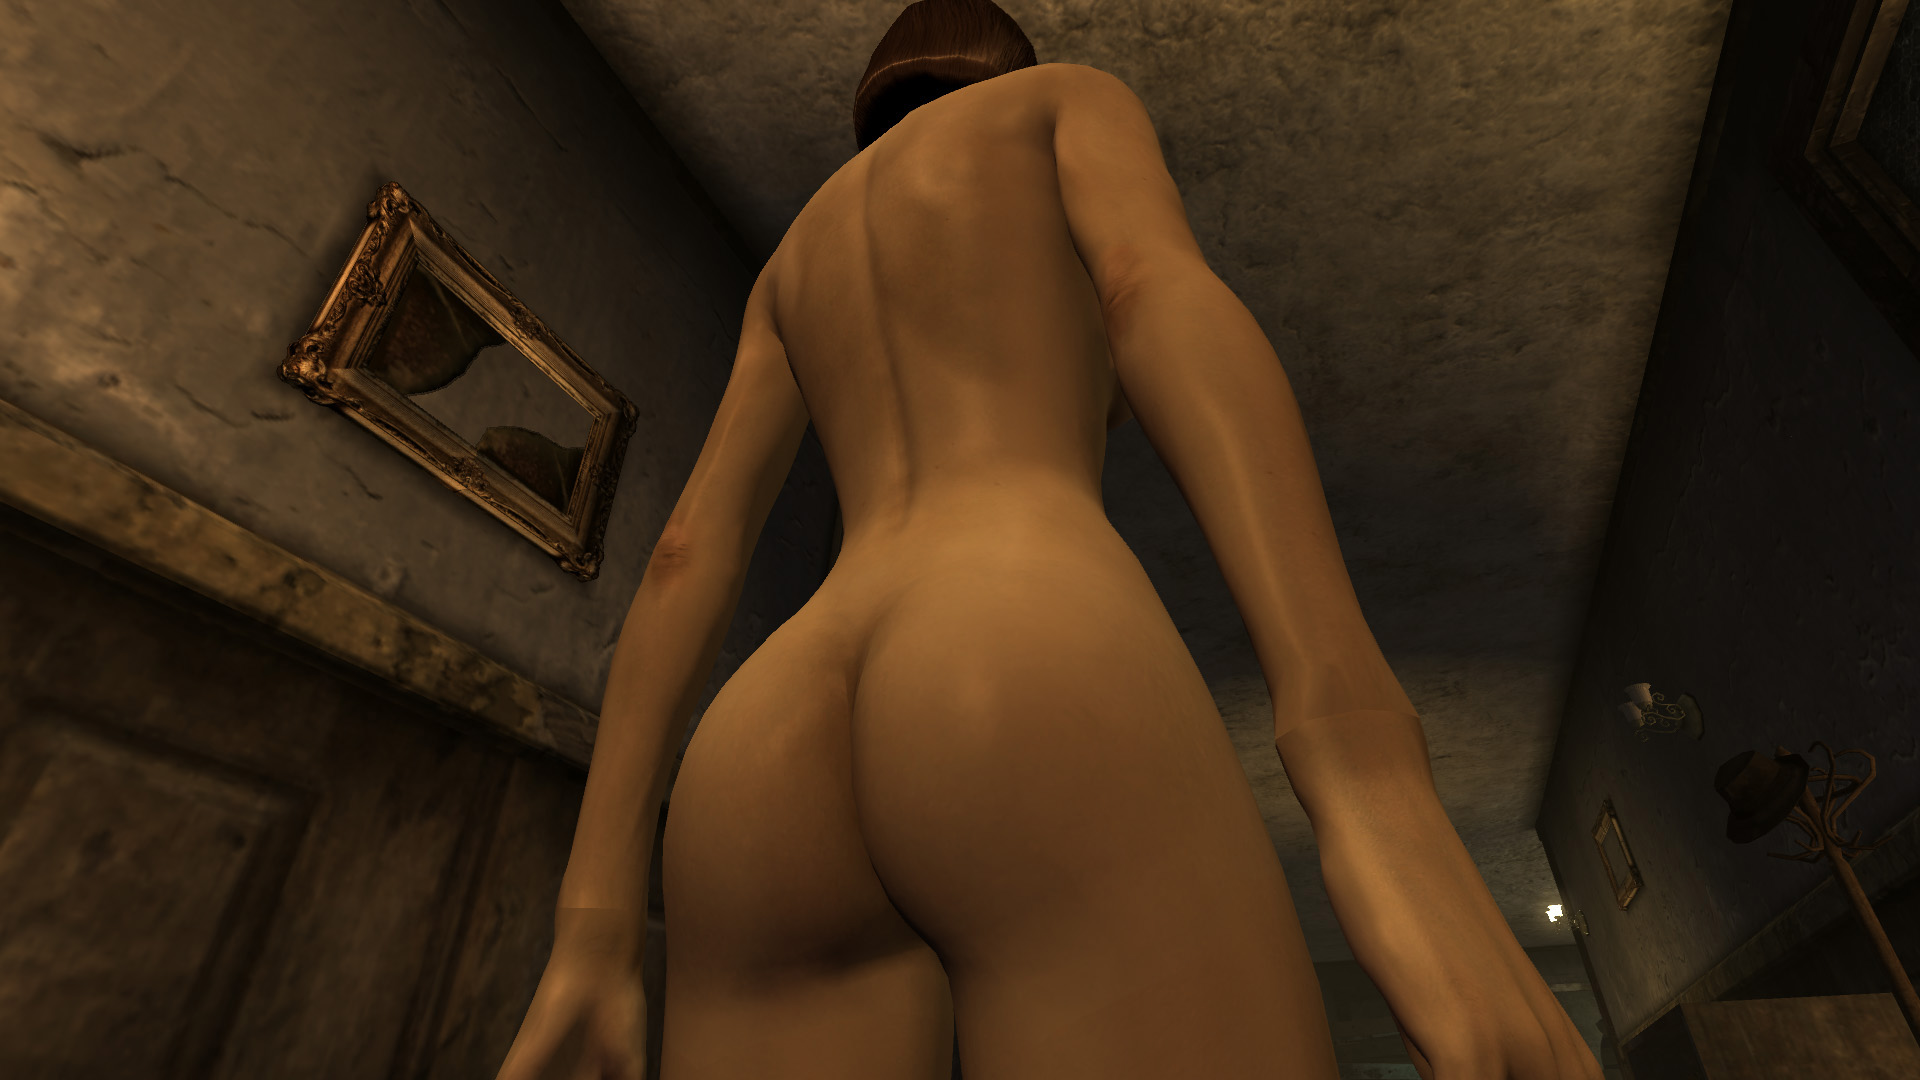 Fallout new vegas naked girl mod pics xxx streaming